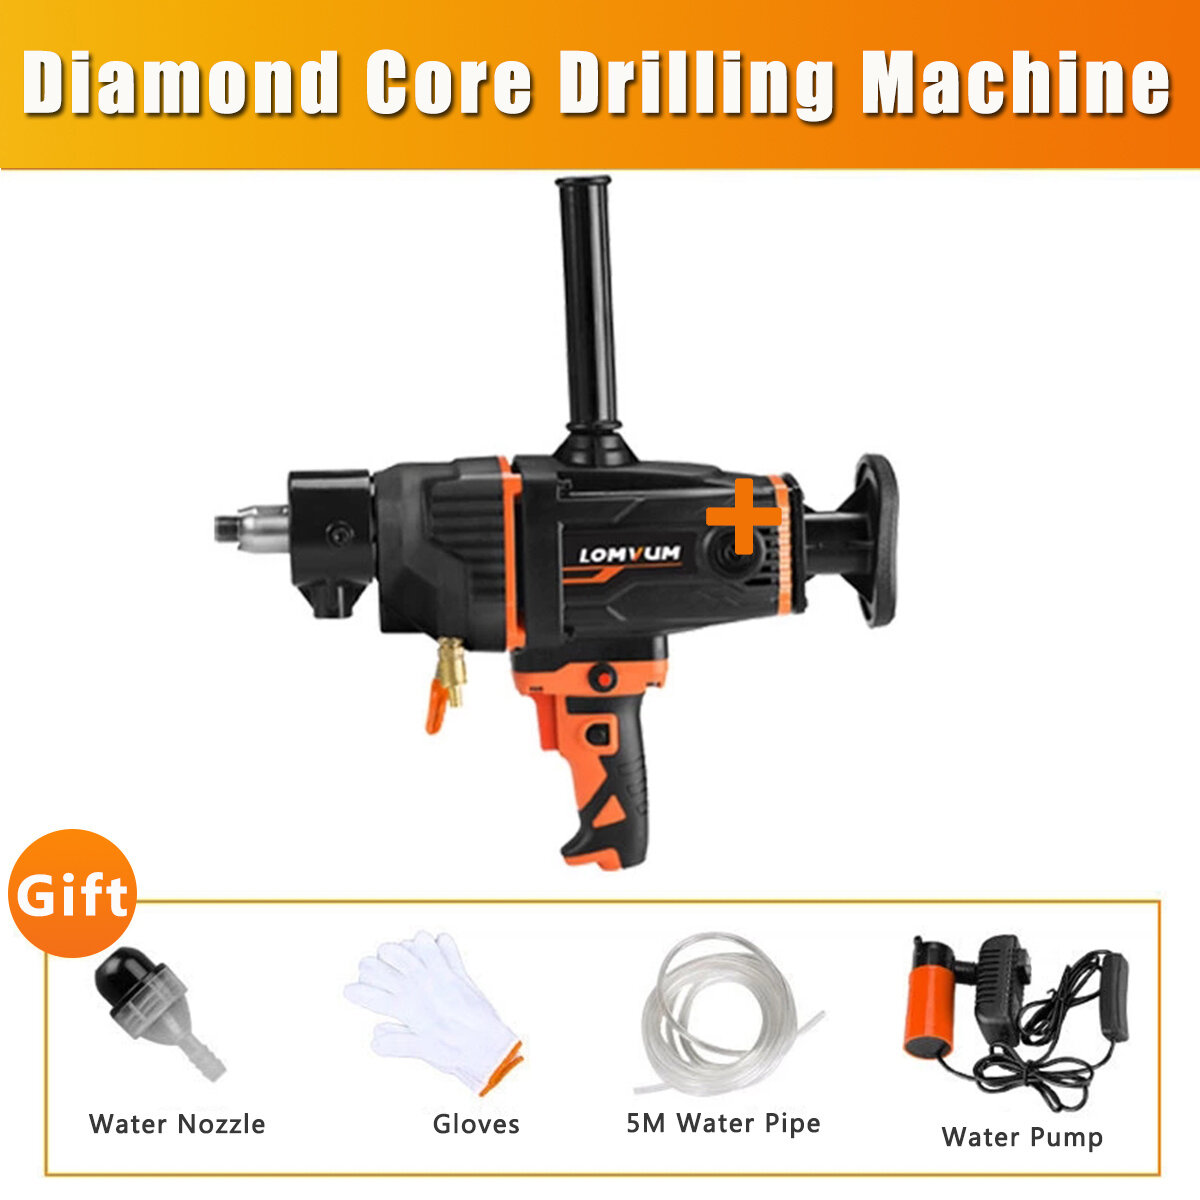 2600W 220V 1800 rpm Diamond Core Hole Puncher  Drilling Machine Infinitely Variable Speed/ 4 Styles